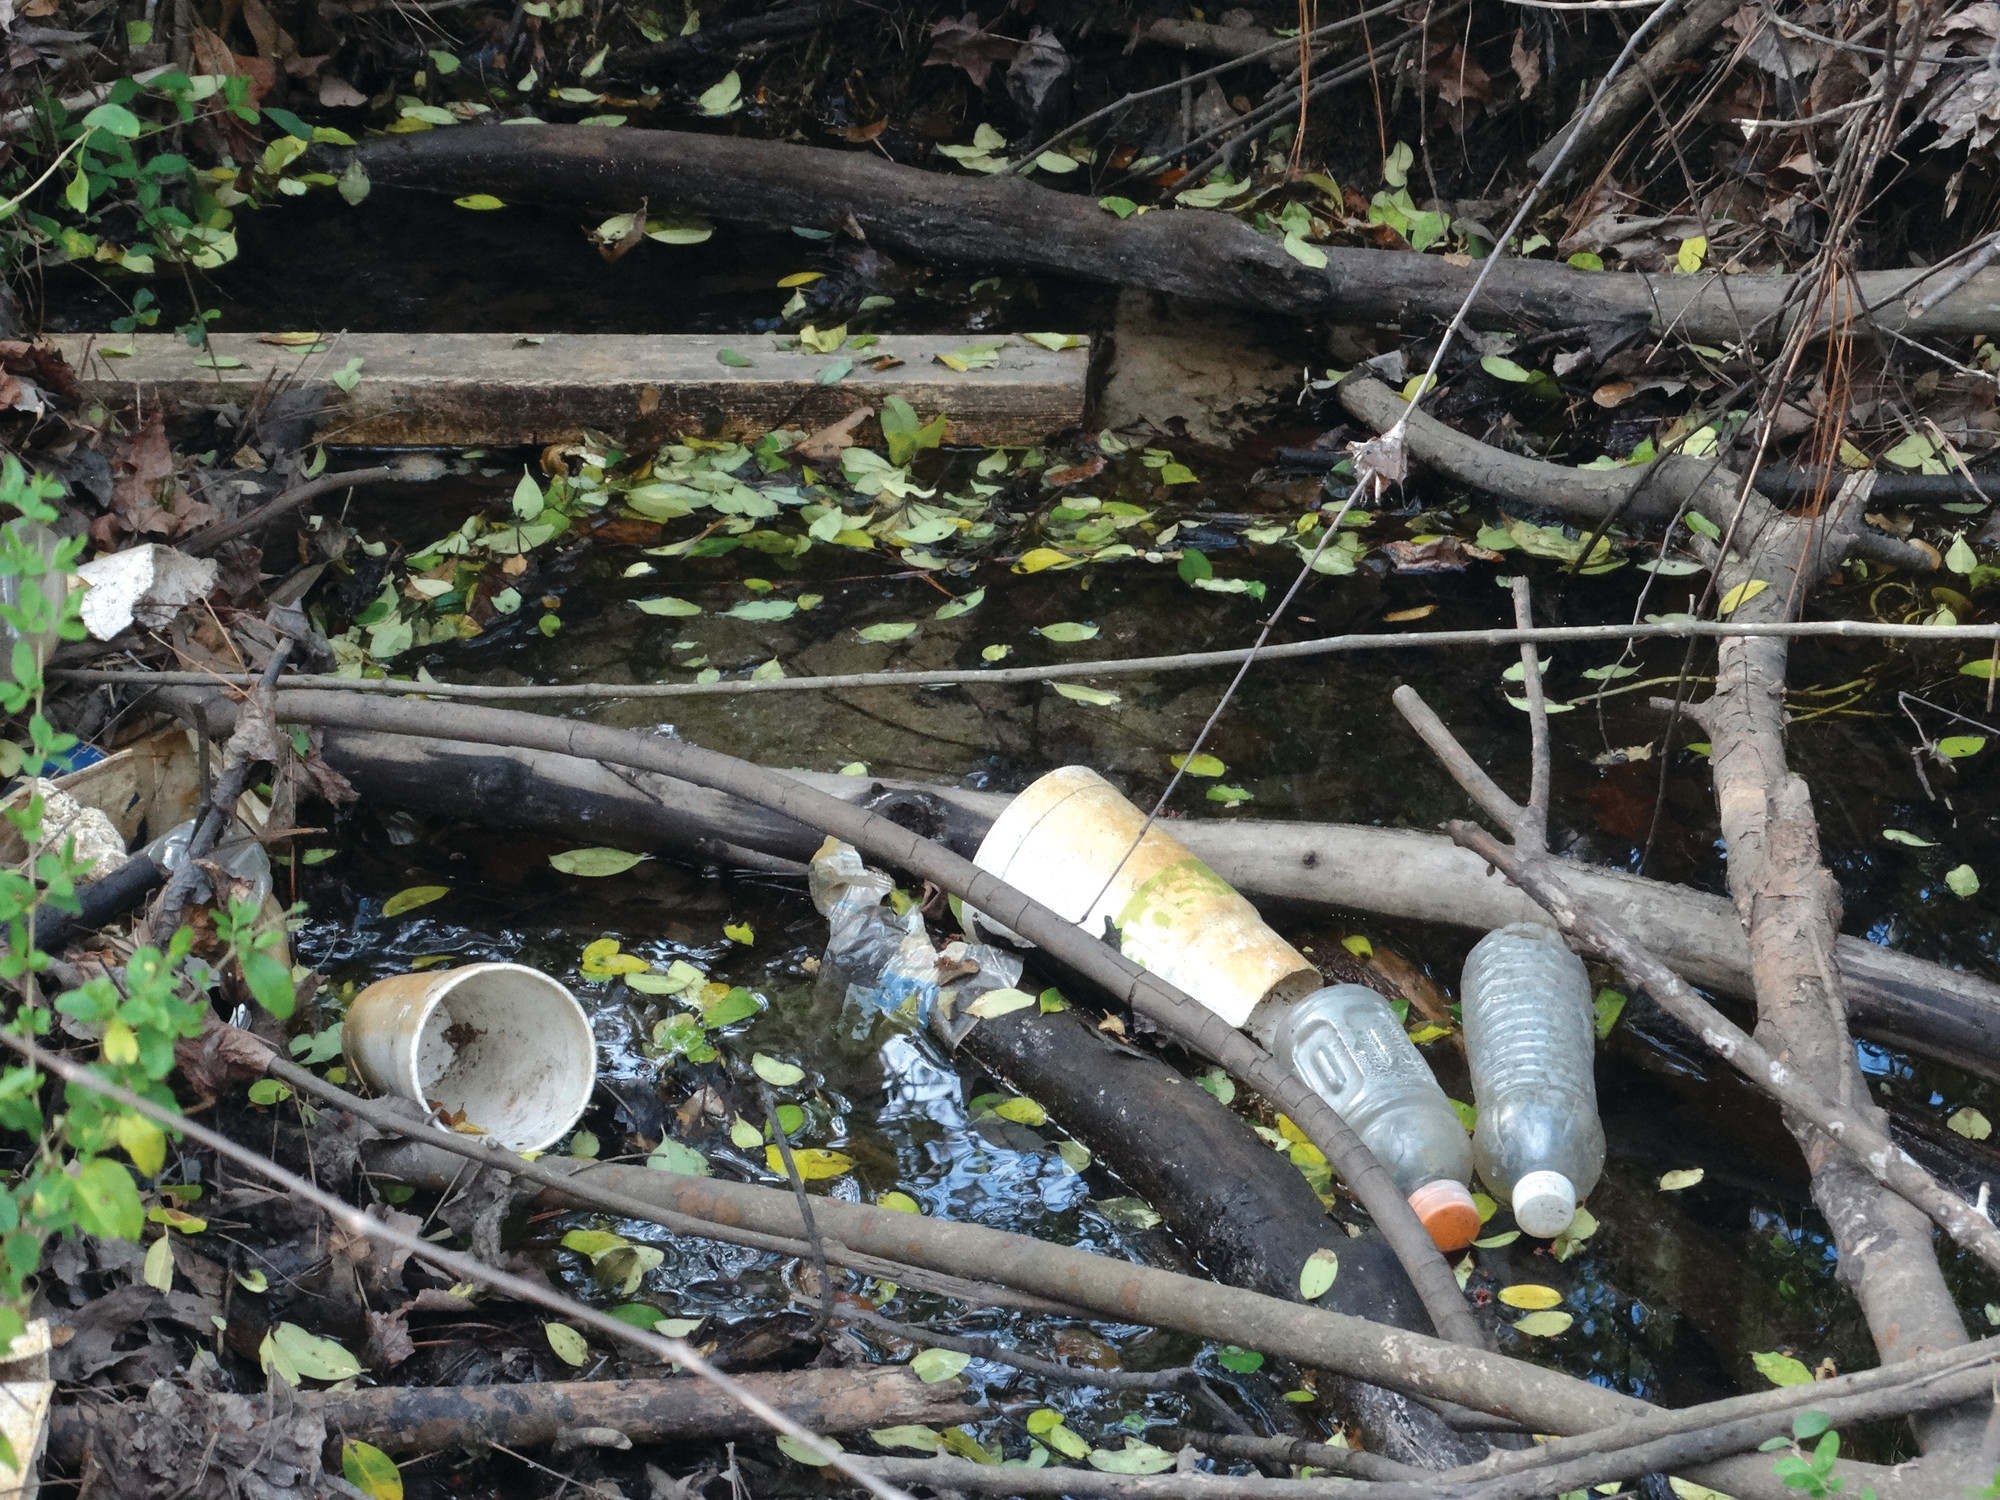 Waterways around Sumter need to be cleaned of debris.